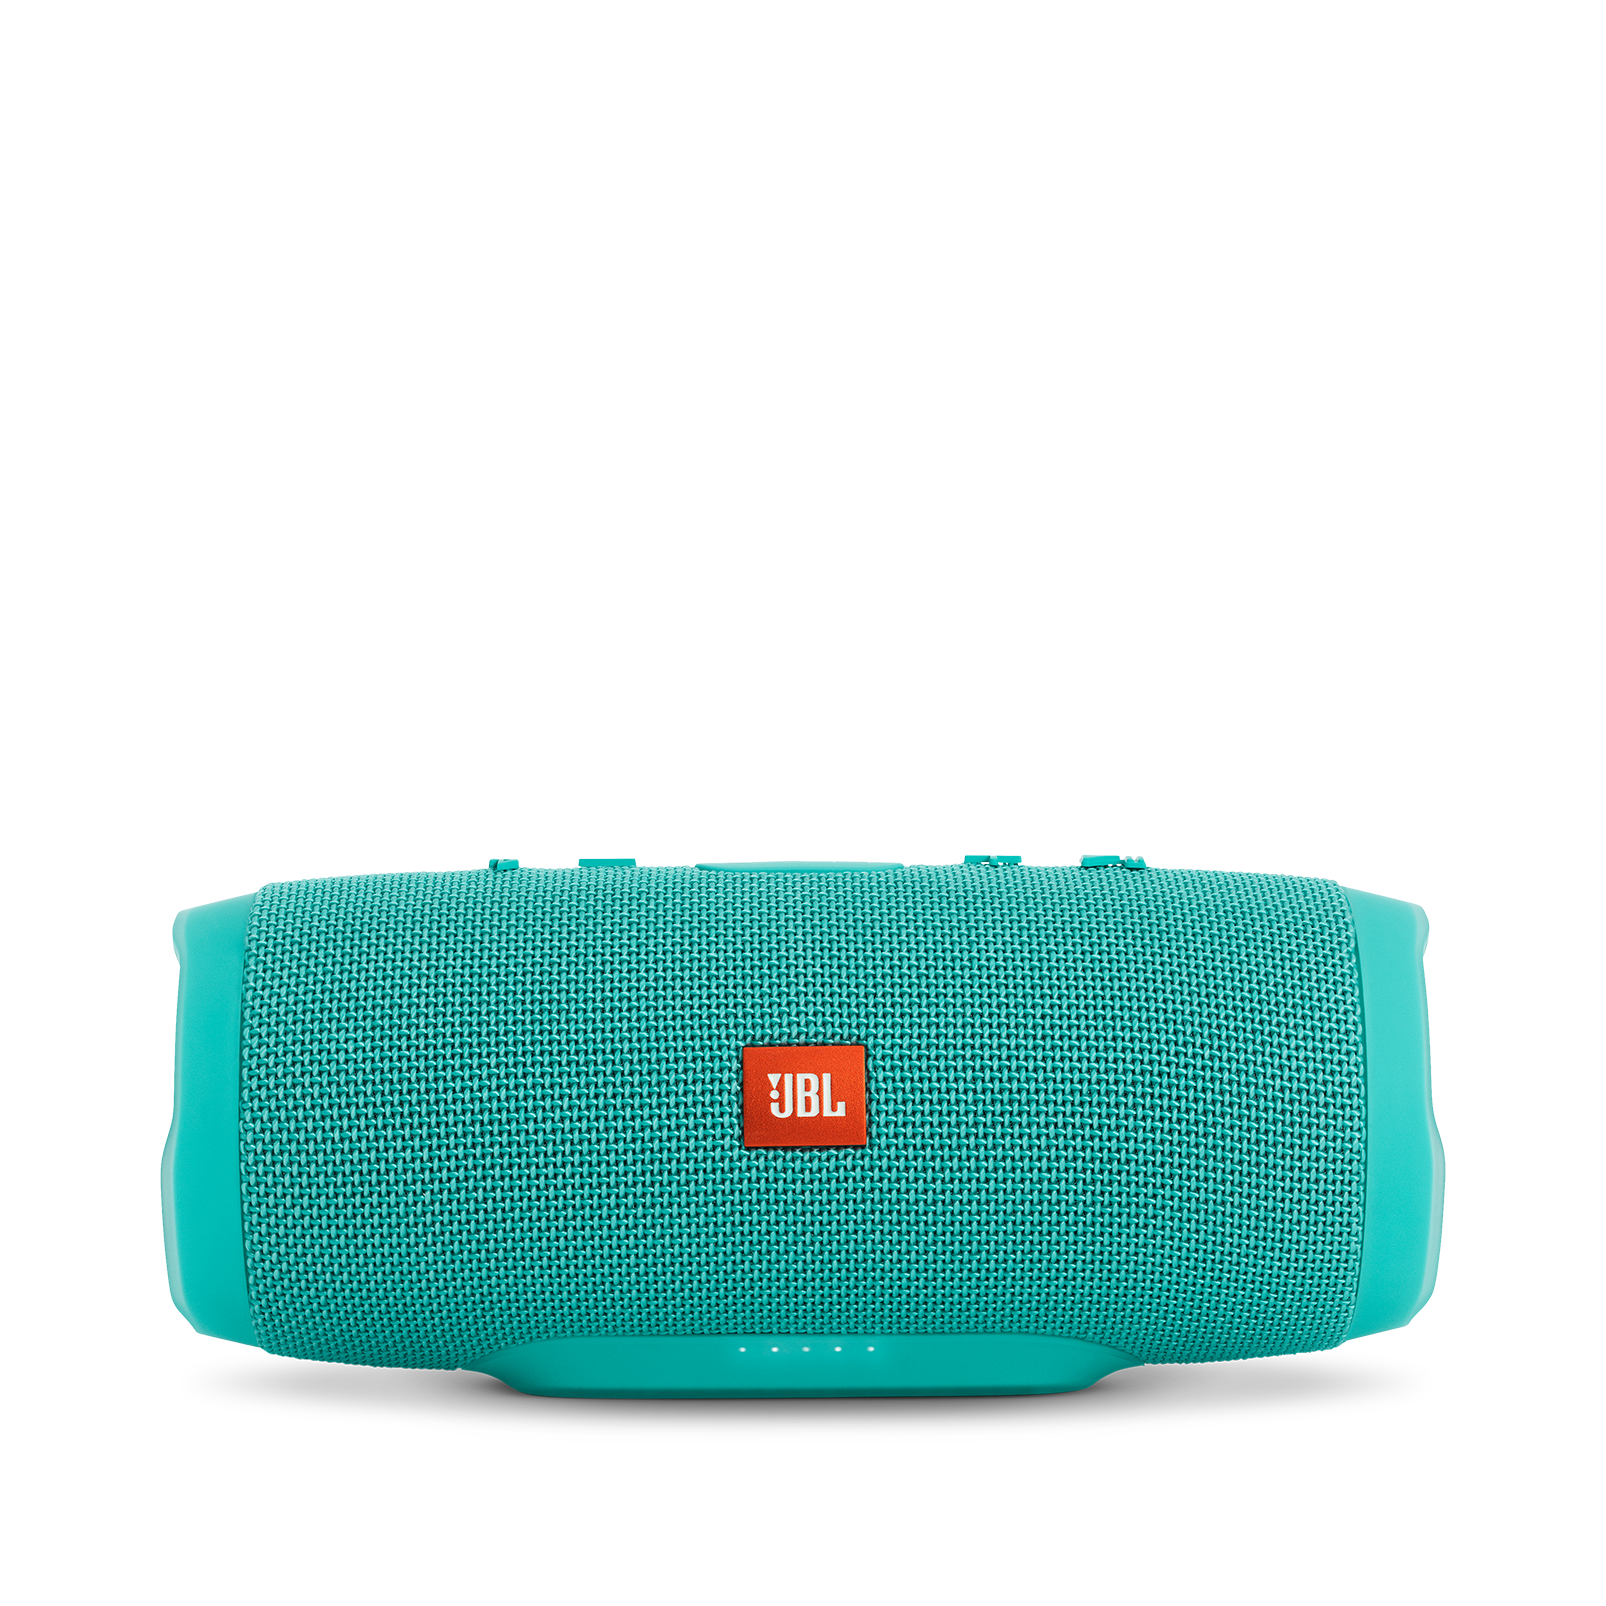 JBL Charge 3 - Teal - Full-featured waterproof portable speaker with high-capacity battery to charge your devices - Front